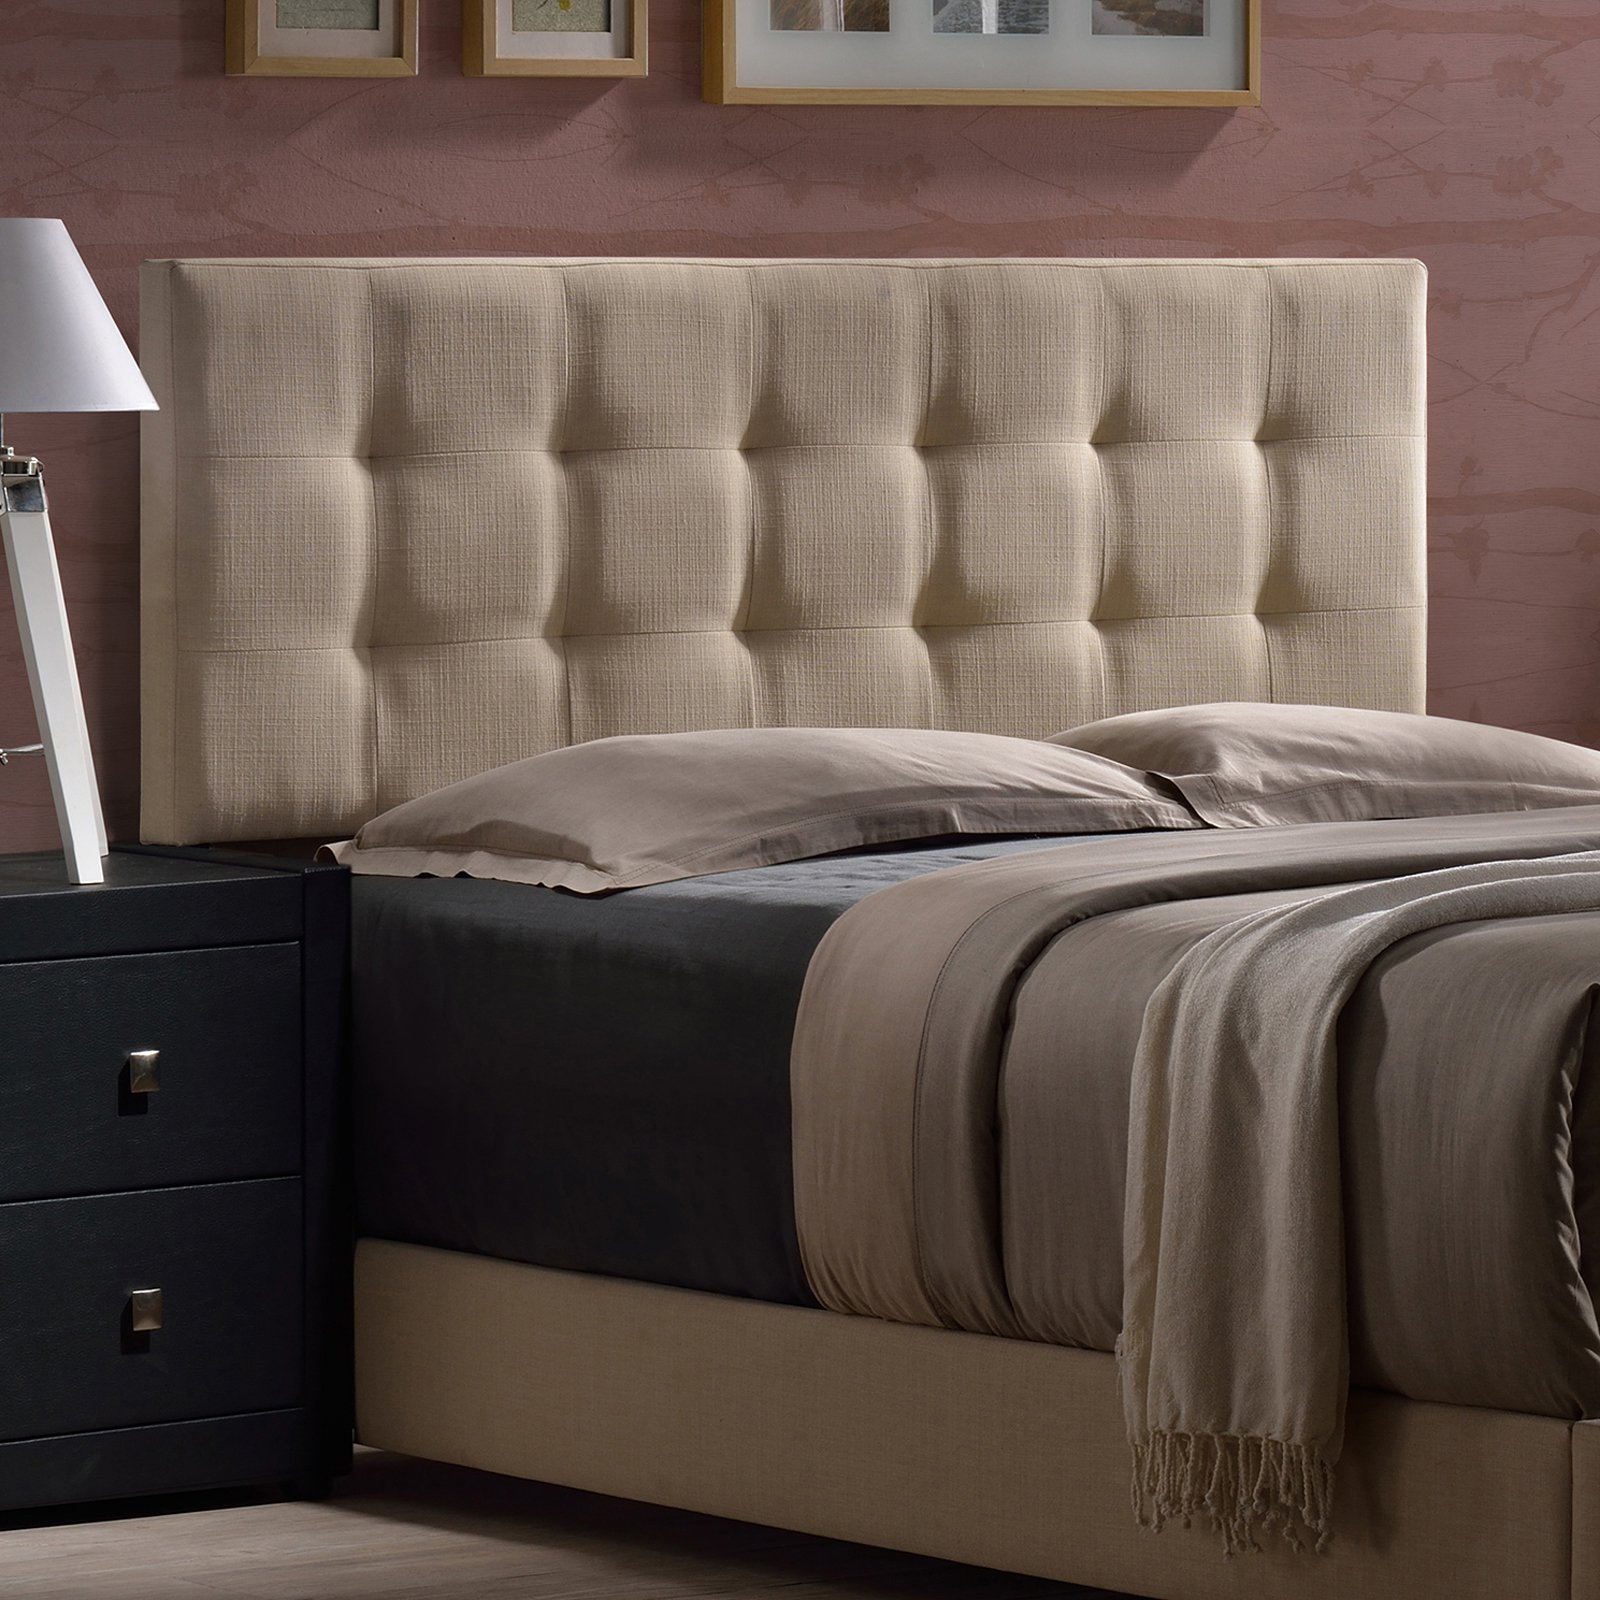 Duggan King Headboard, Linen Beige Fabric, Box 1 of 2